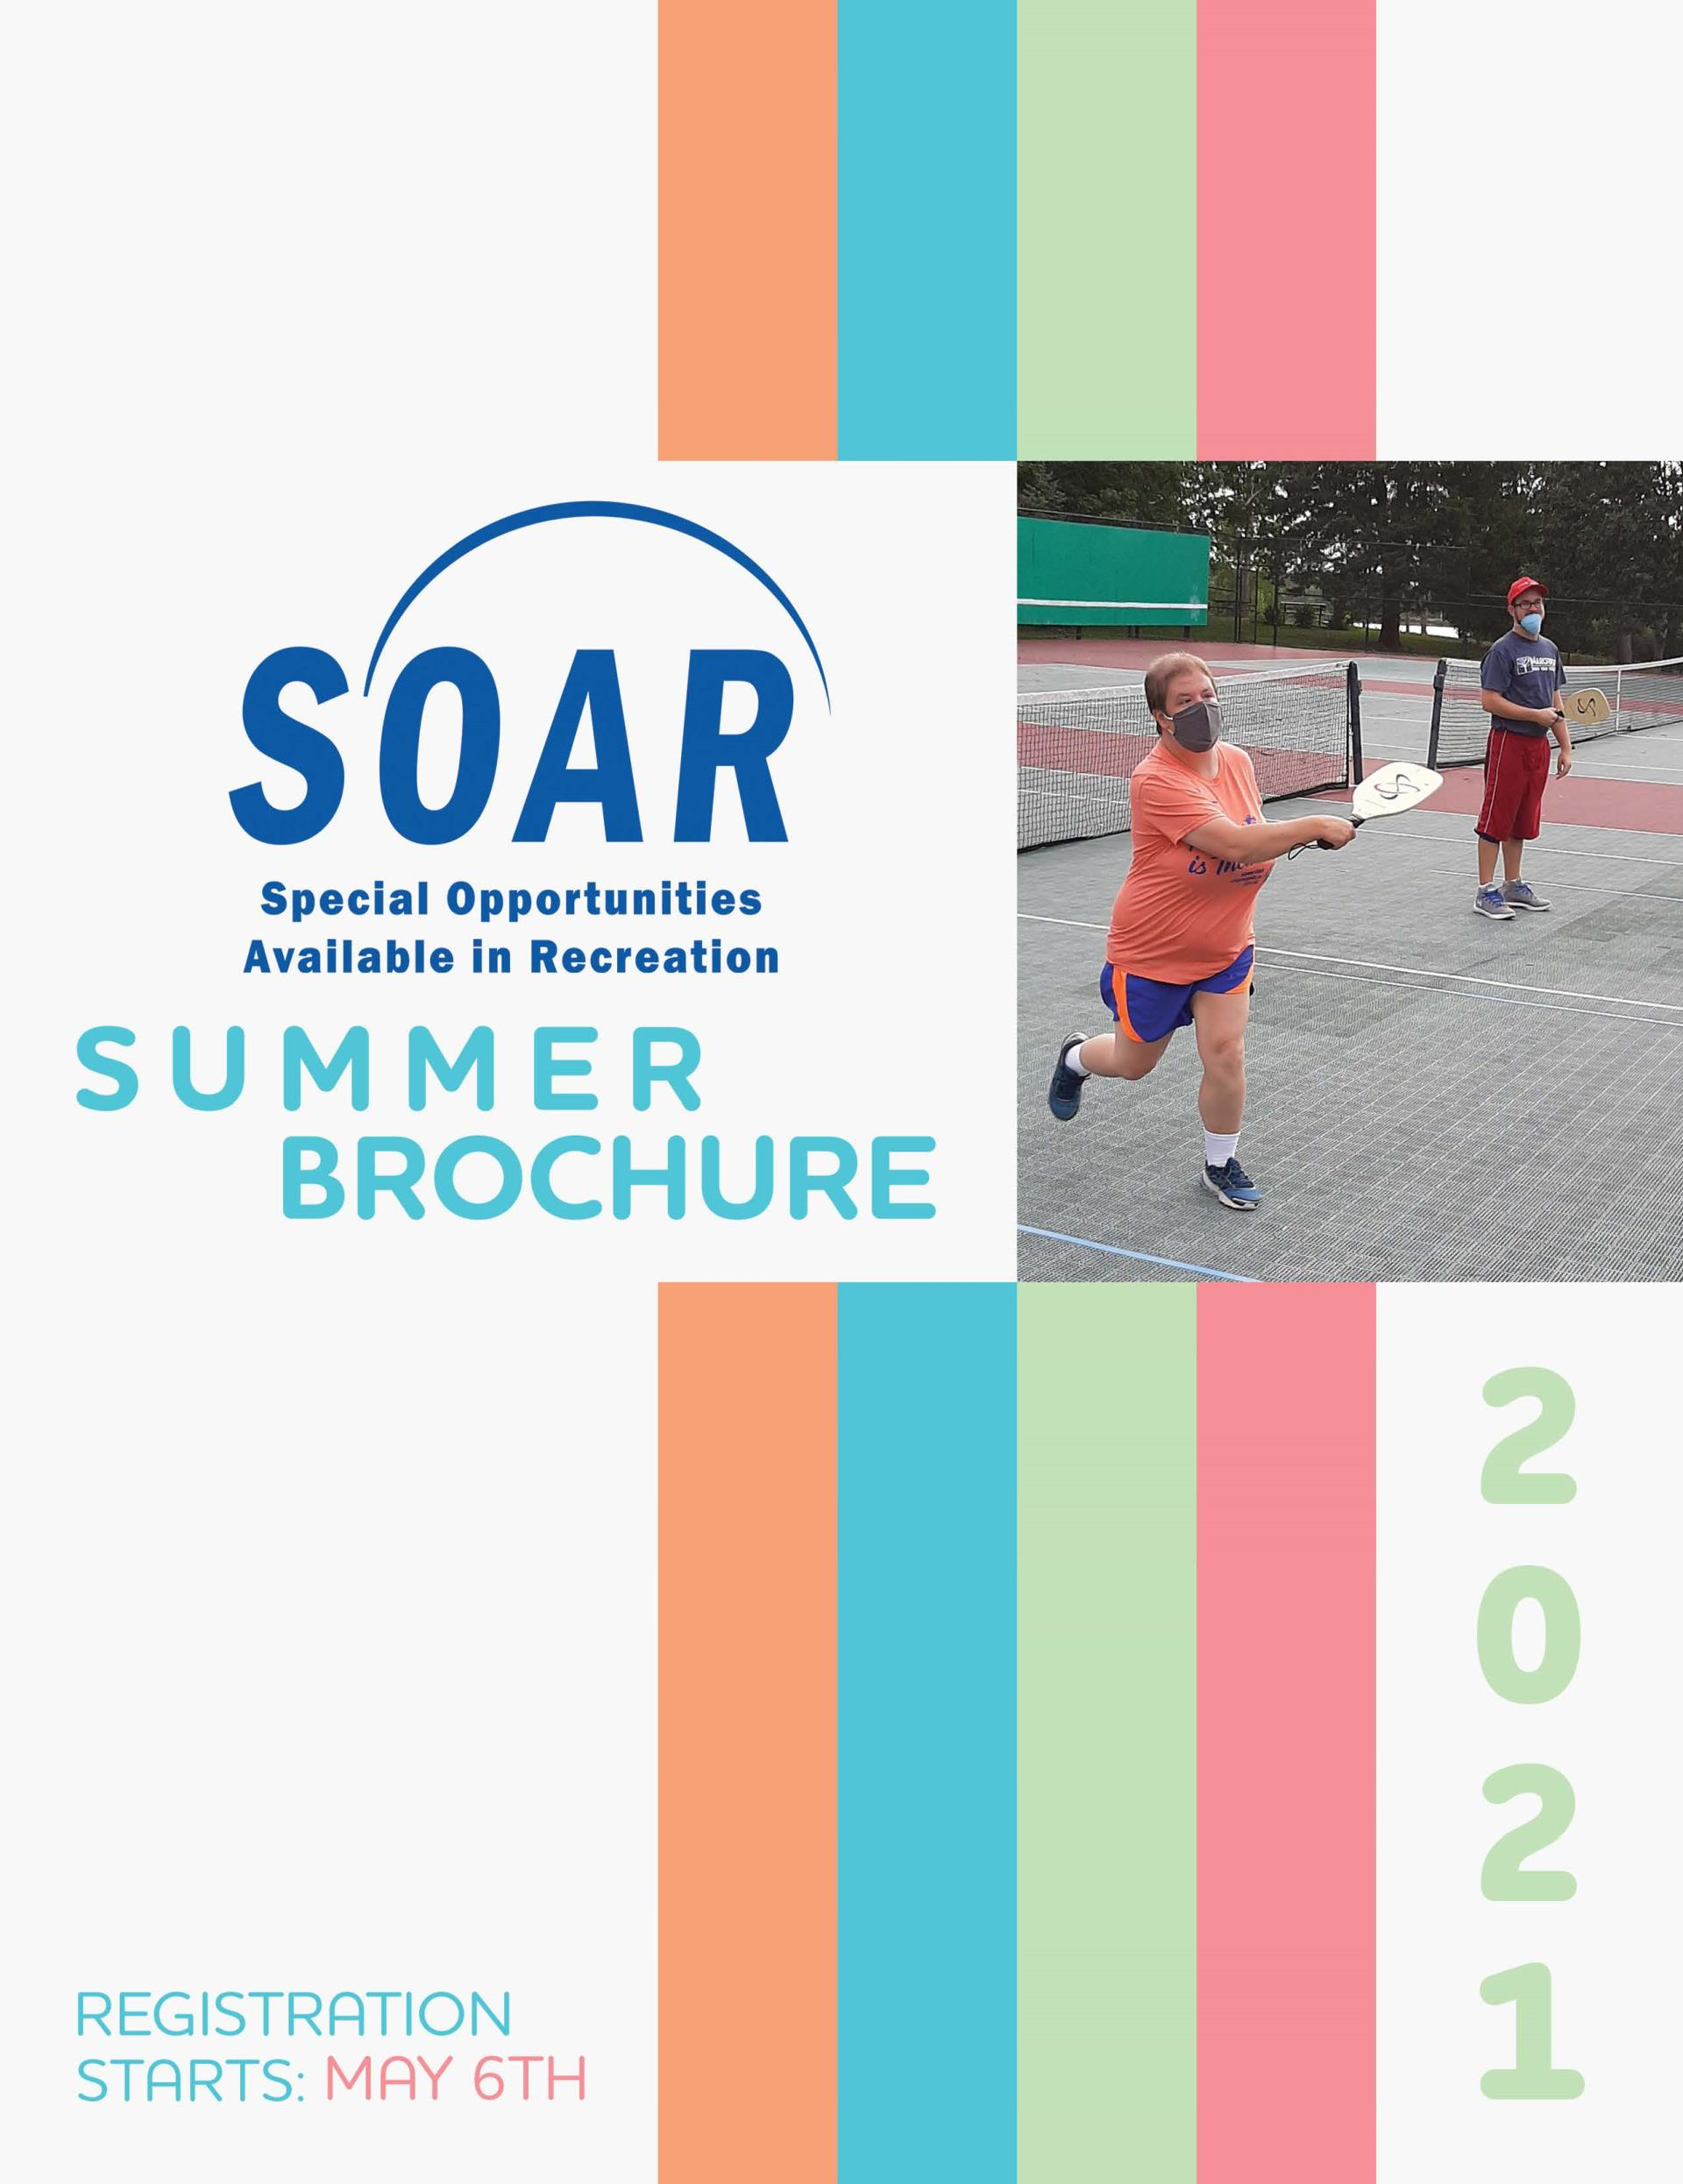 Current SOAR Program Borchure